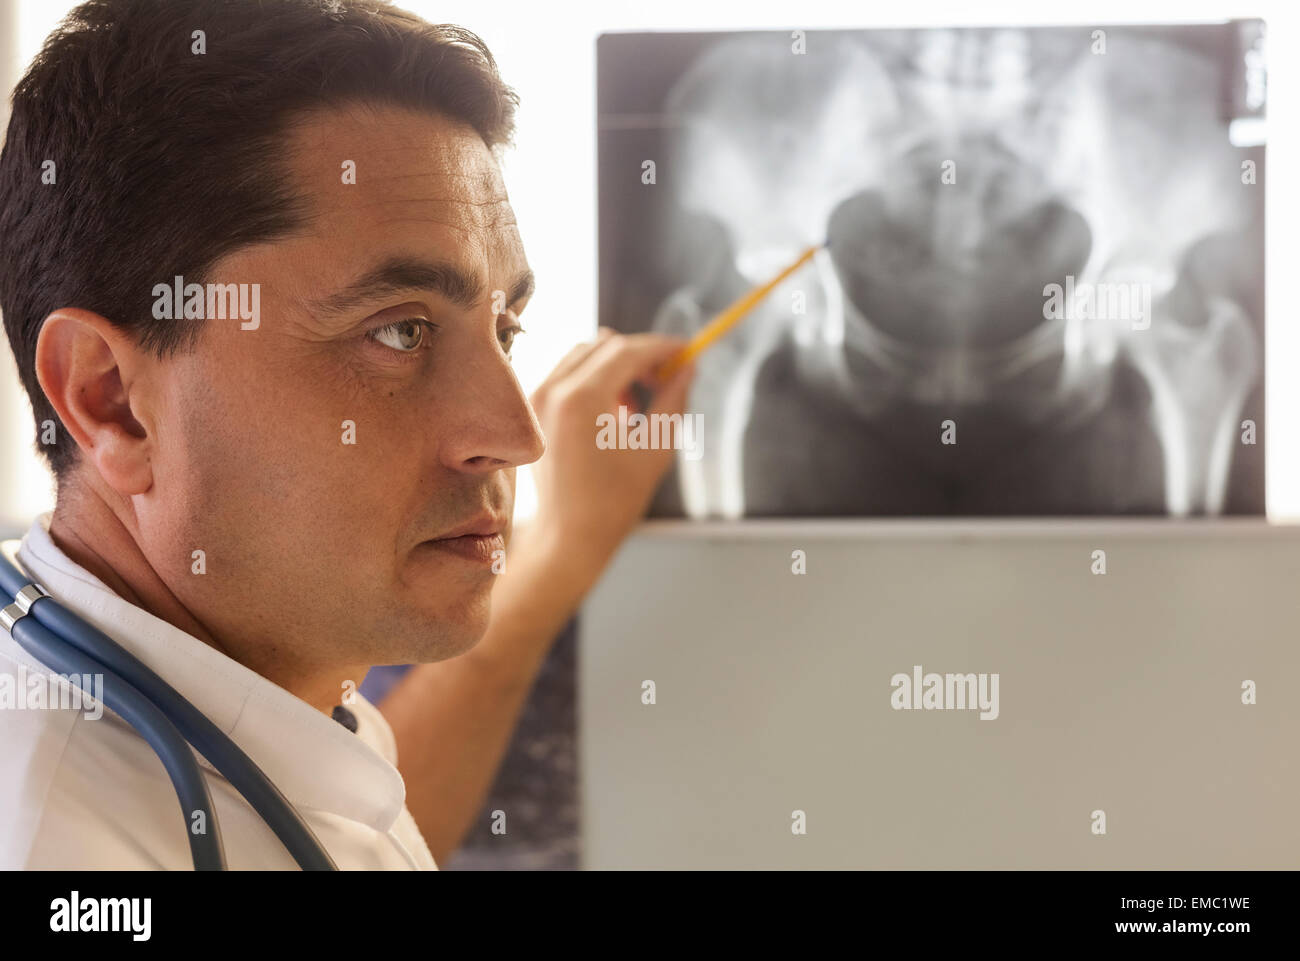 Doctor pointing at x-ray of a pelvis - Stock Image